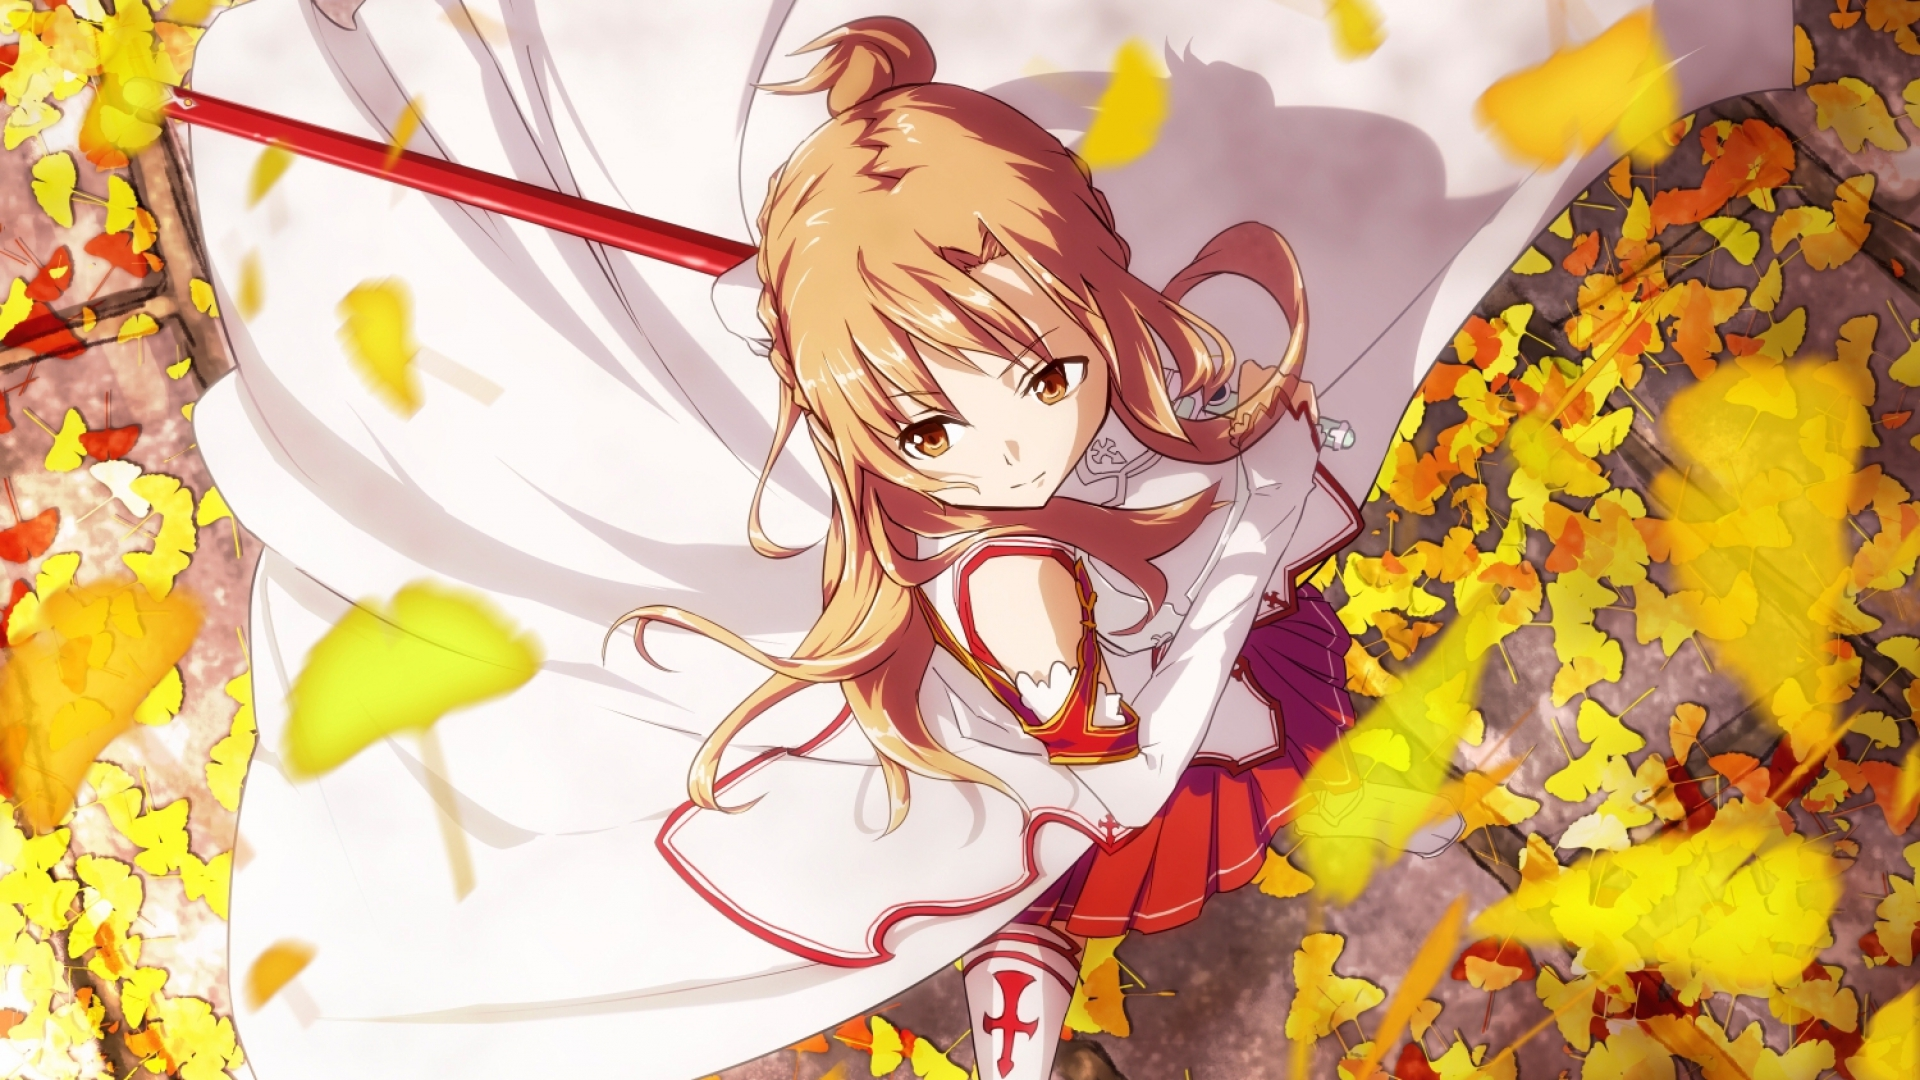 Sword Art Online Asuna HD Wallpaper